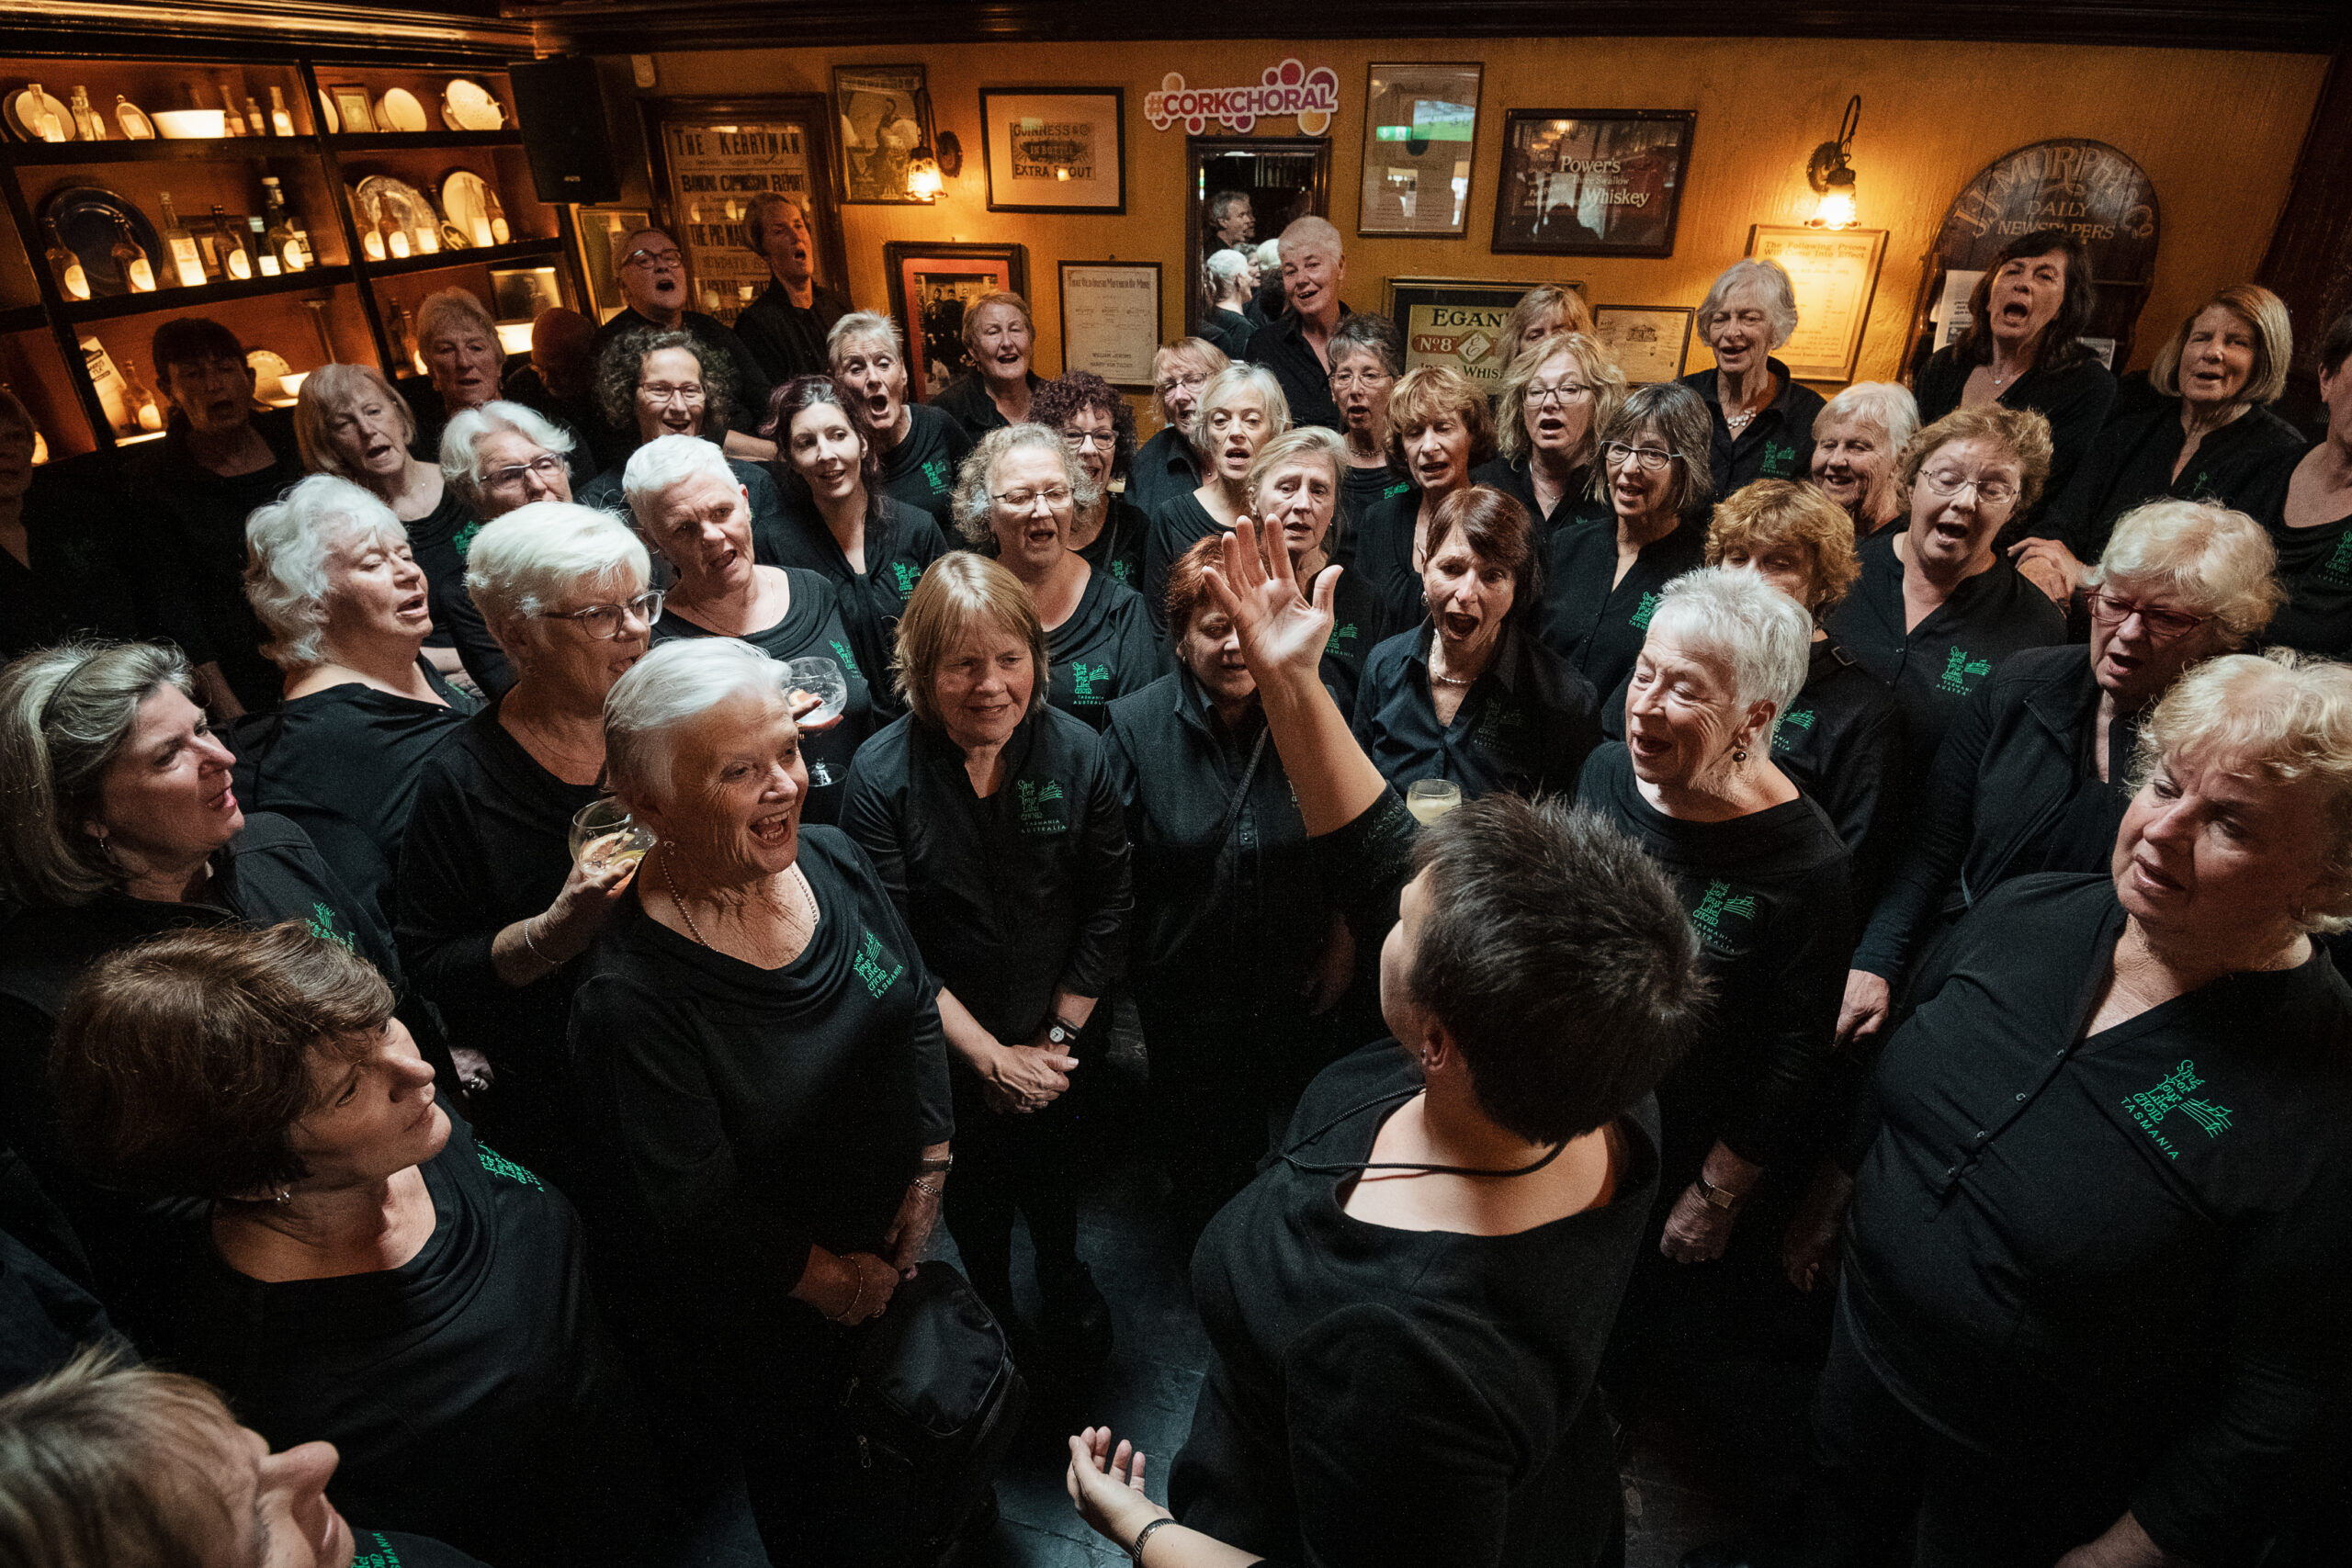 Jed Niezgoda, Ireland: Choral Trail, 2019, Sing For Your Life! Choir, Australia - Sing For Your Life! choir performing in The Shelbourne Bar, a traditional Irish pub in the heart of Cork, Ireland, as part of the Choral Trail of the Cork International Choral Festival.